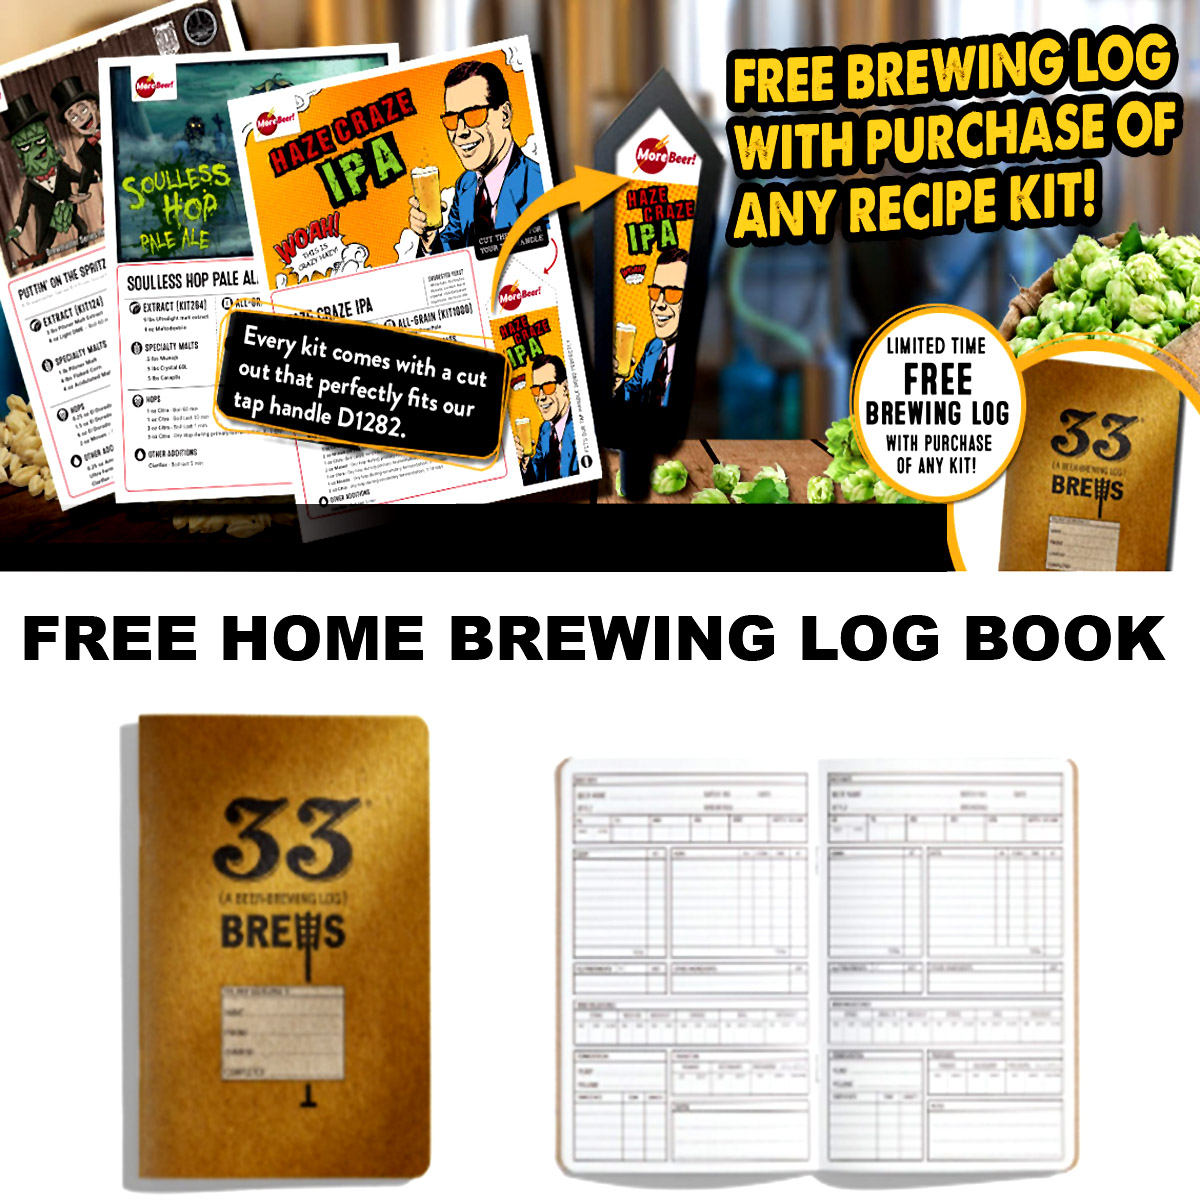 MoreBeer Get A FREE Brewiing Log Book With The Purchase Of Any Recipe Kit With This MoreBeer.com Promo Code Coupon Code